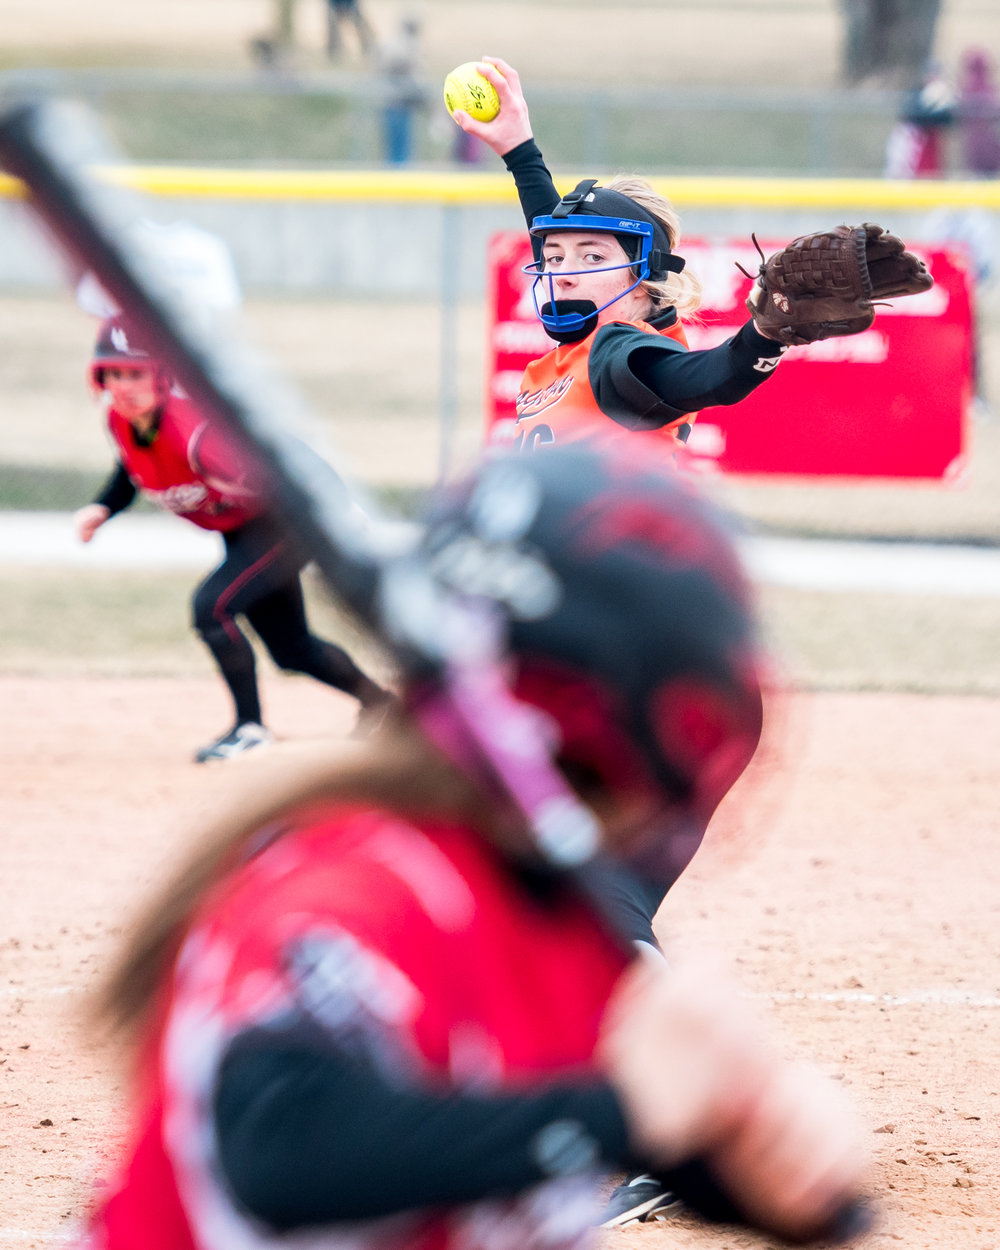 Burlington @ UG Softball_Low Res-8.jpg